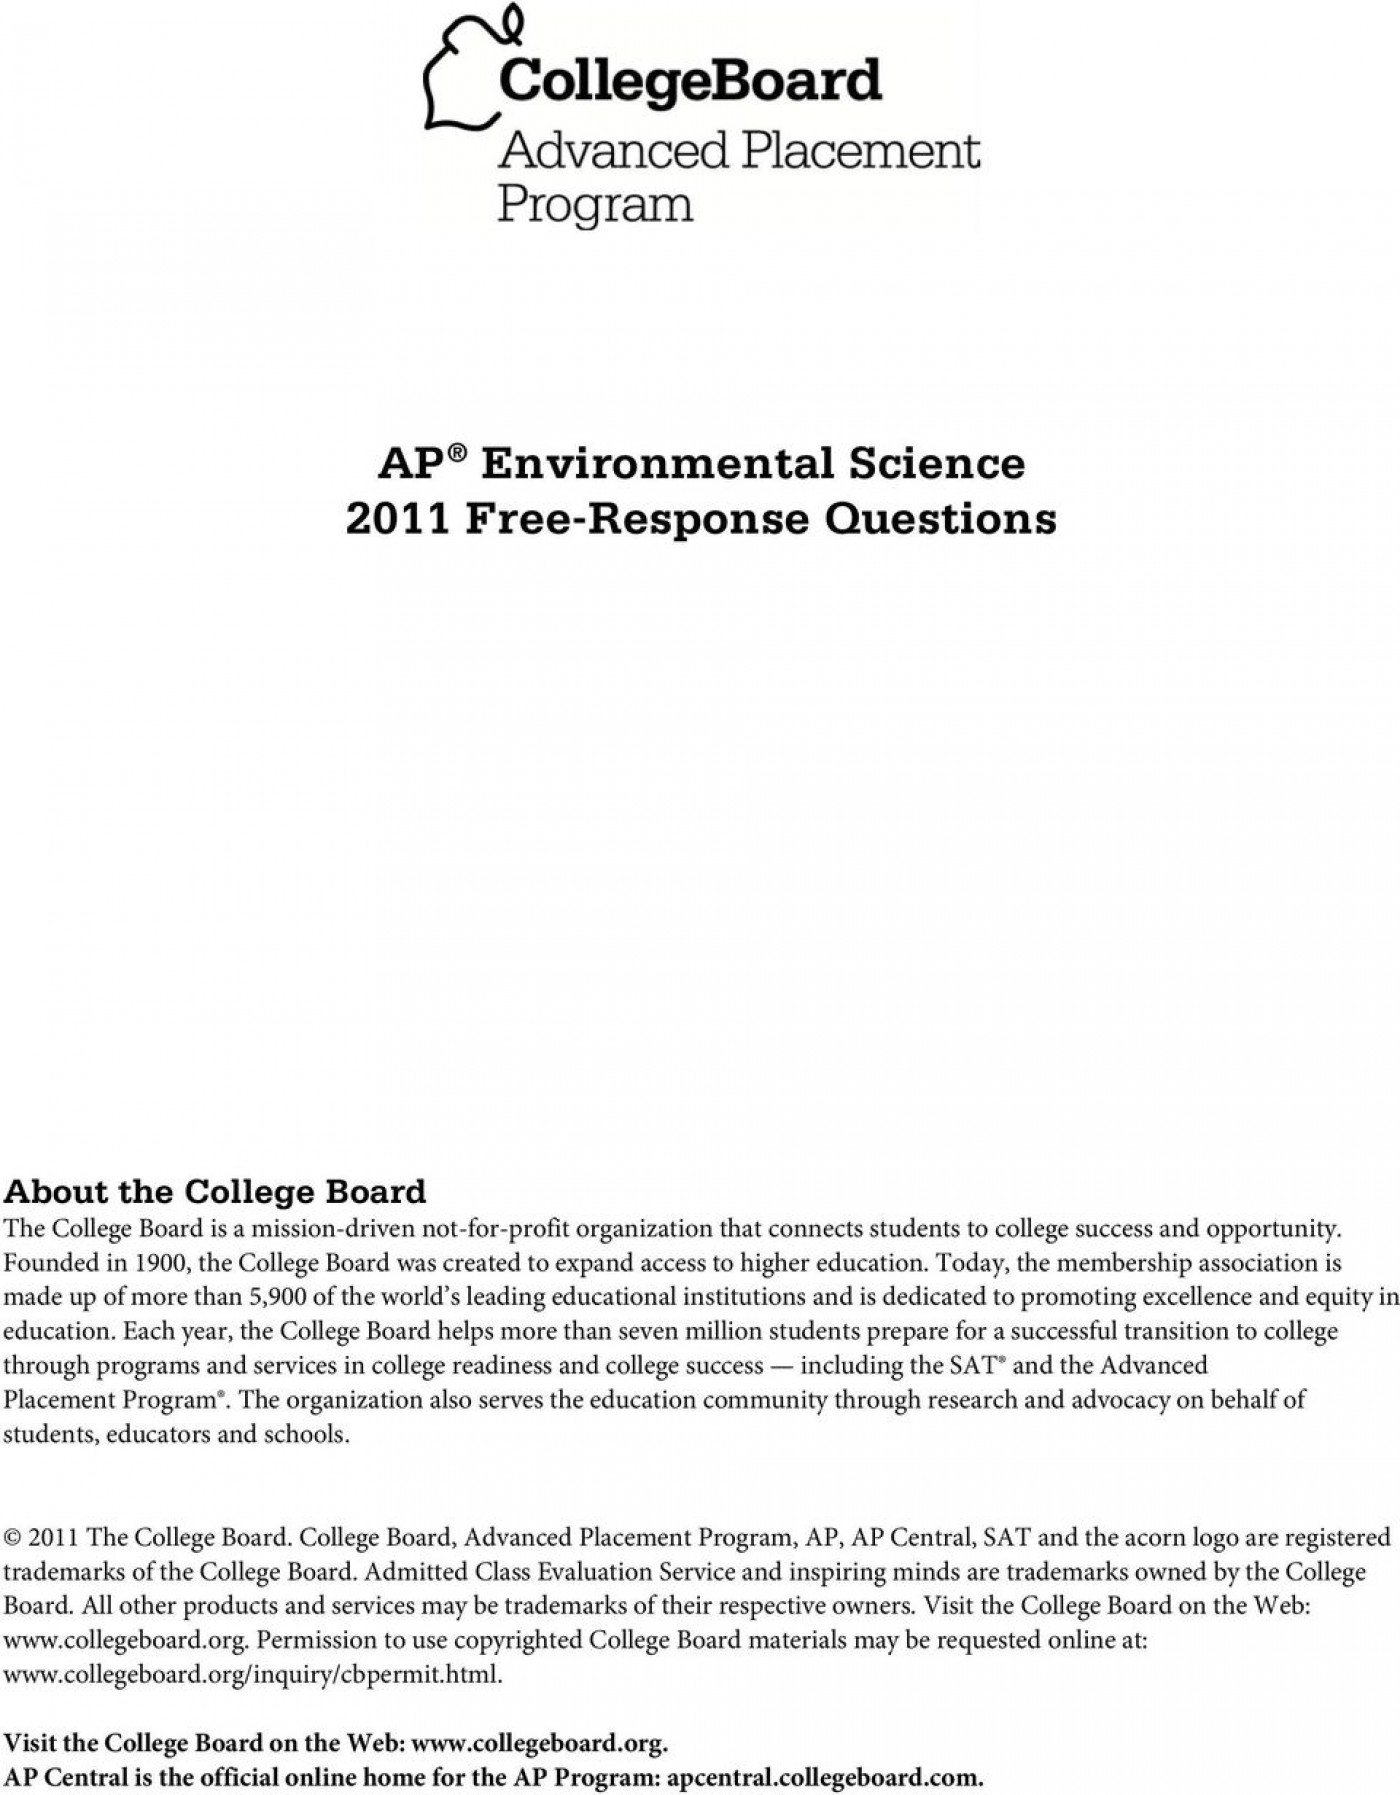 025 Research Paper Page 1 Ap Environmental Science Fearsome Topics 1400